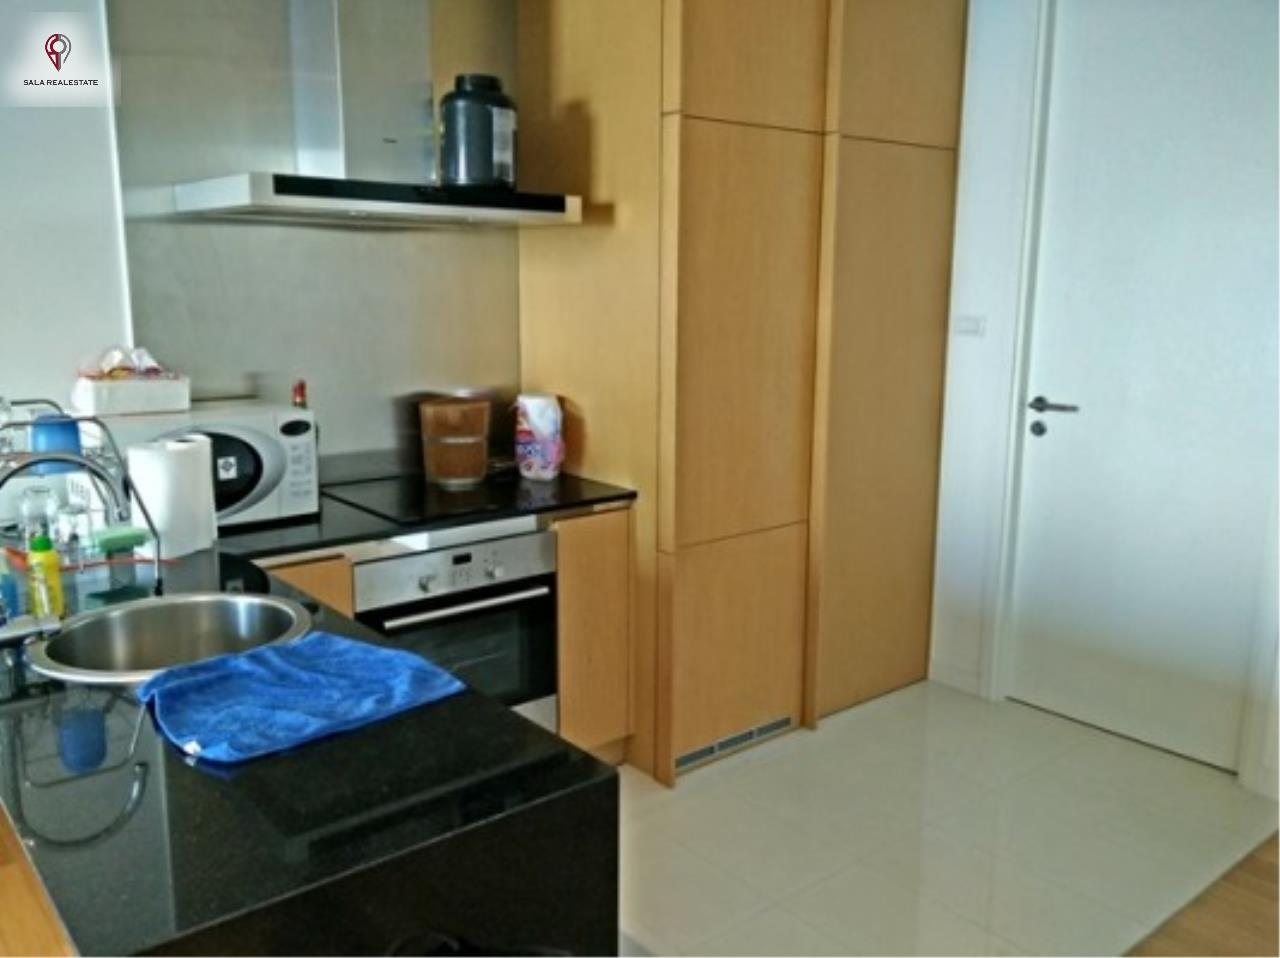 SALA ESTATE Agency's ( FOR SALE ) THE PANO - 2 BEDROOMS 2 BATHROOMS, FULLY FURNISHED 5